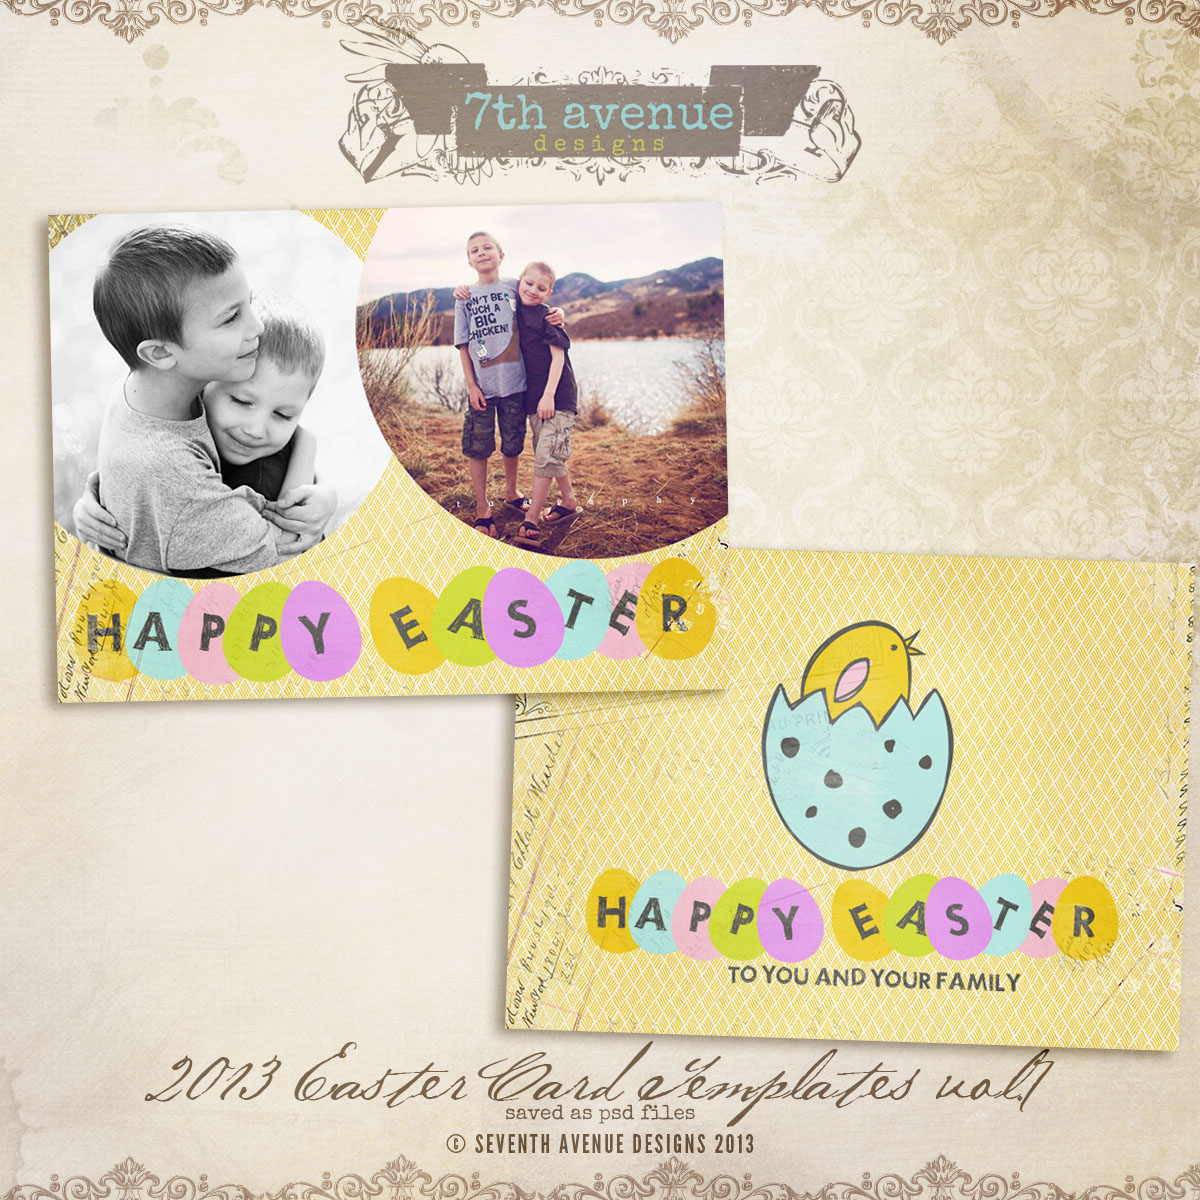 2013 Easter Card vol.7